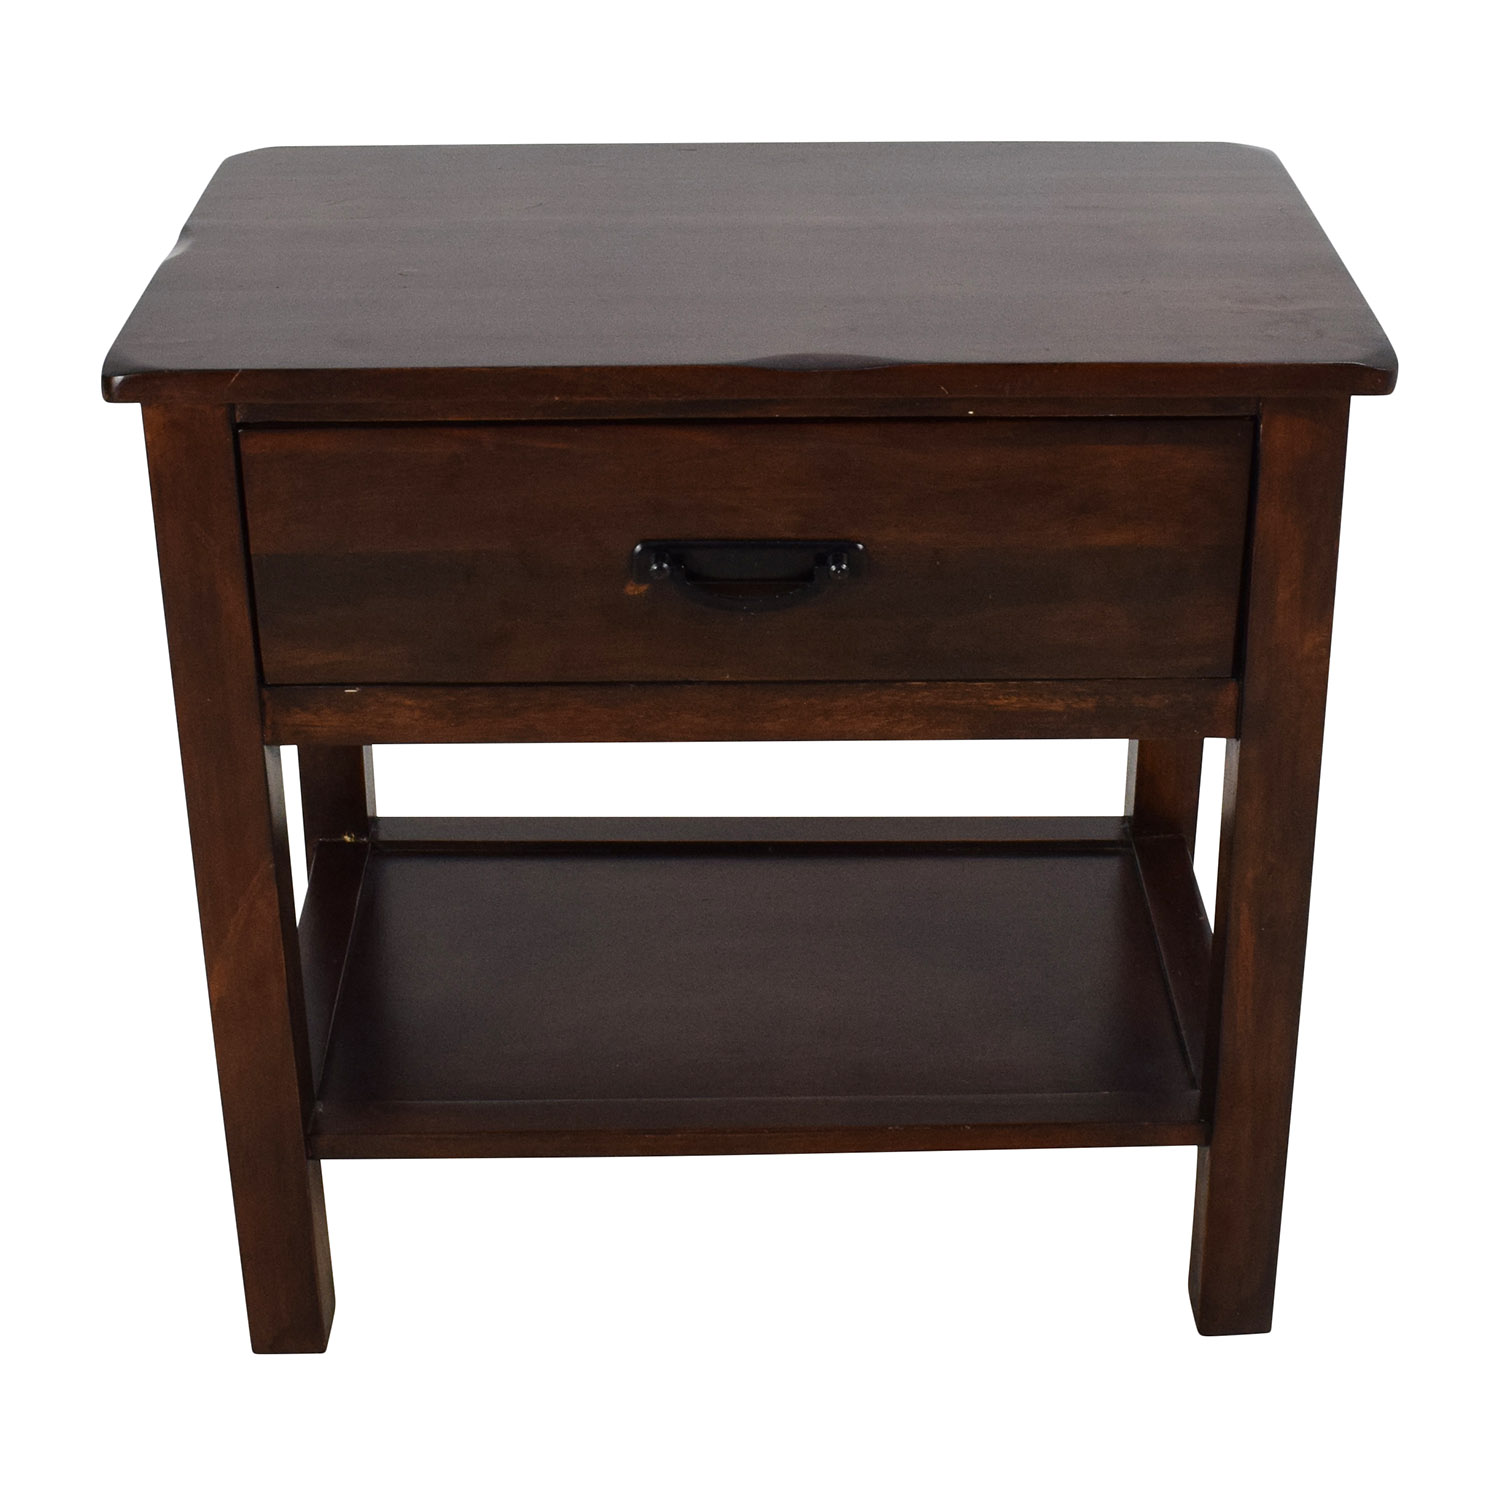 Charming Solid Wood Night Stands | Redoubtable Rustic Nightstand